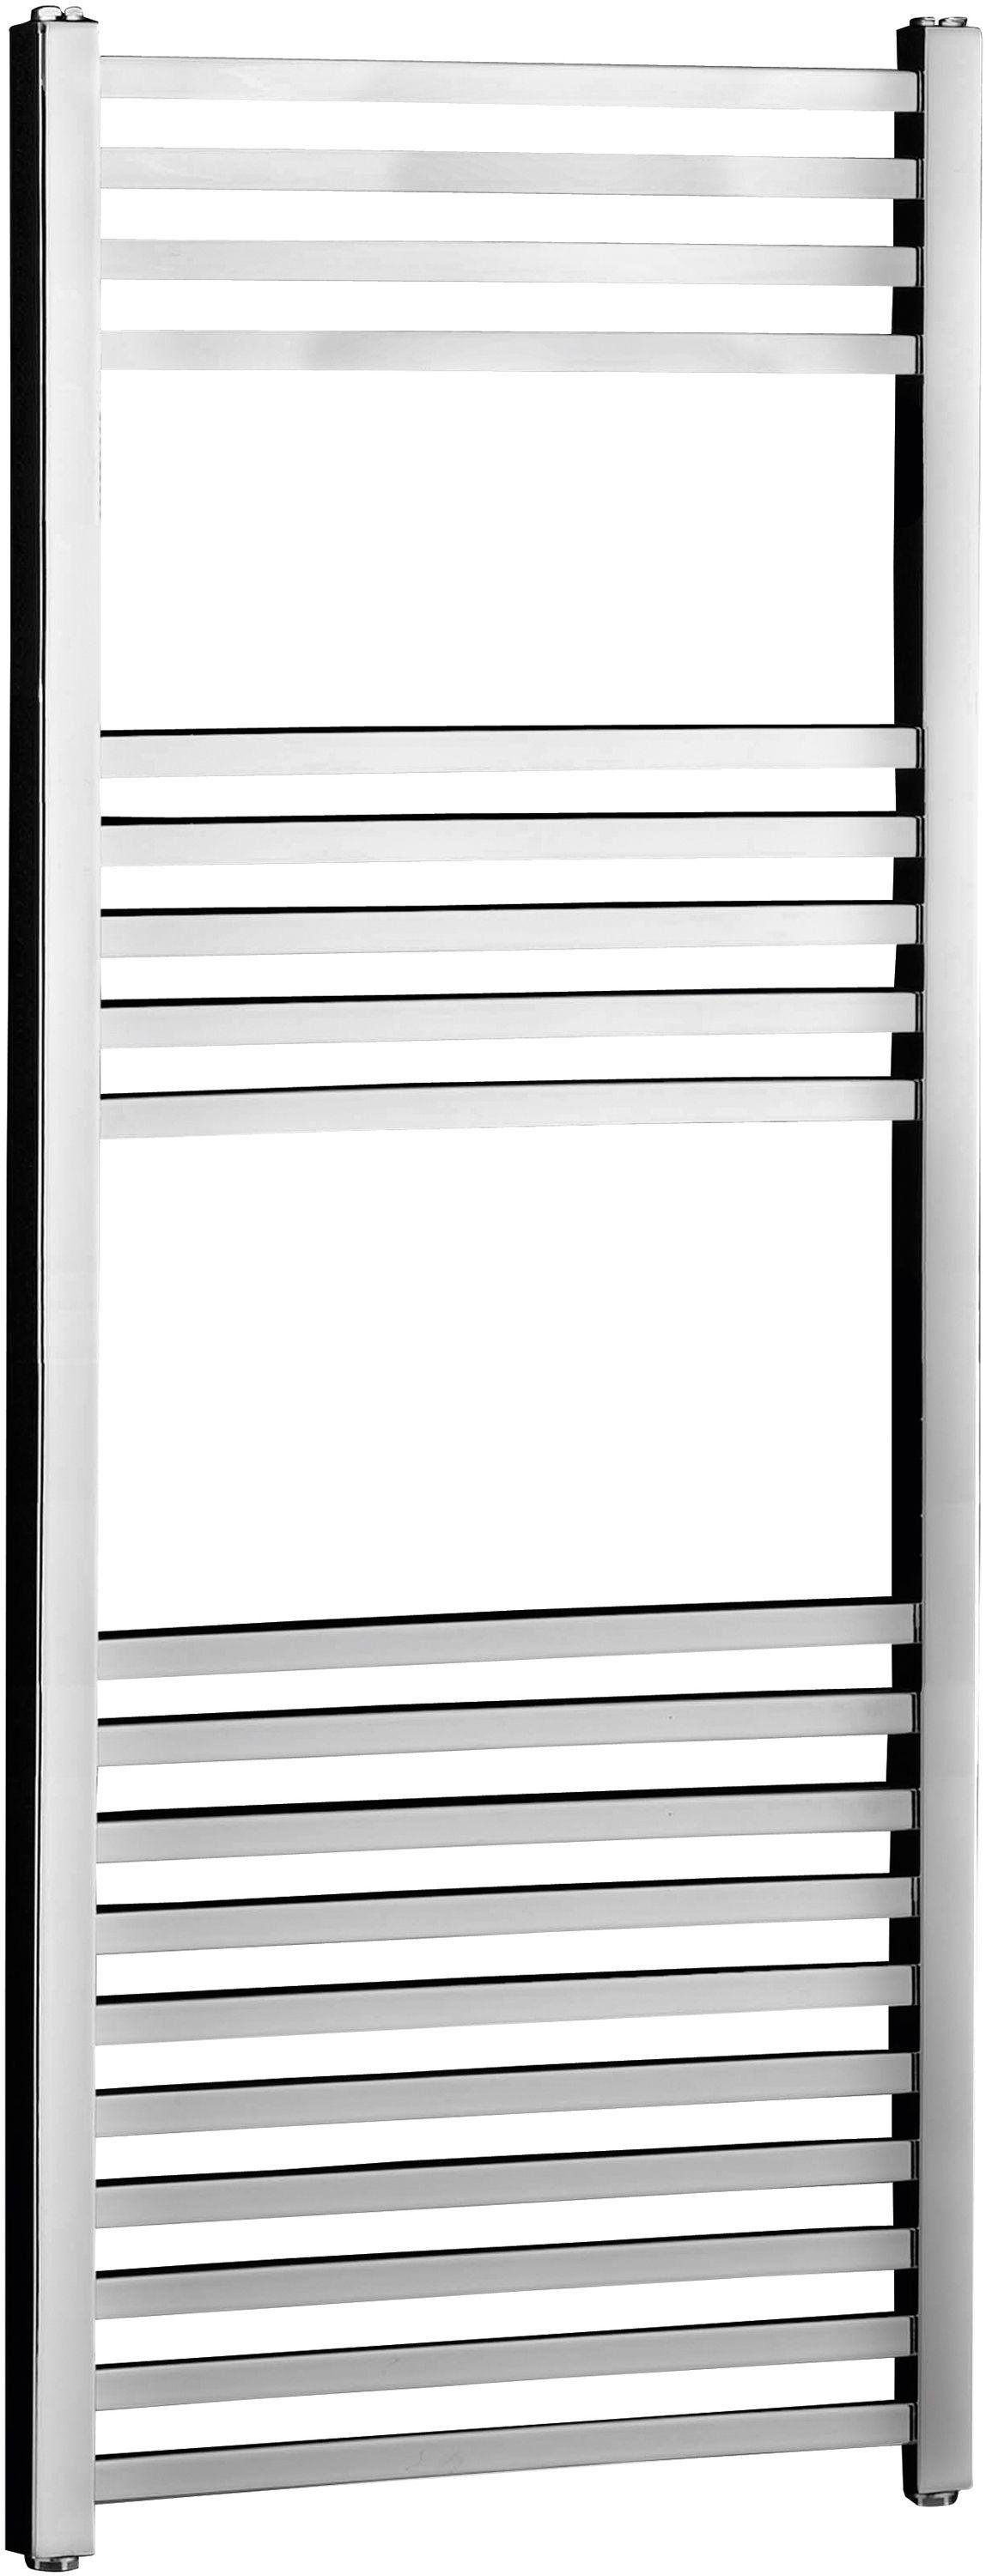 cubic-towel-radiator-110-x-45cm-chrome